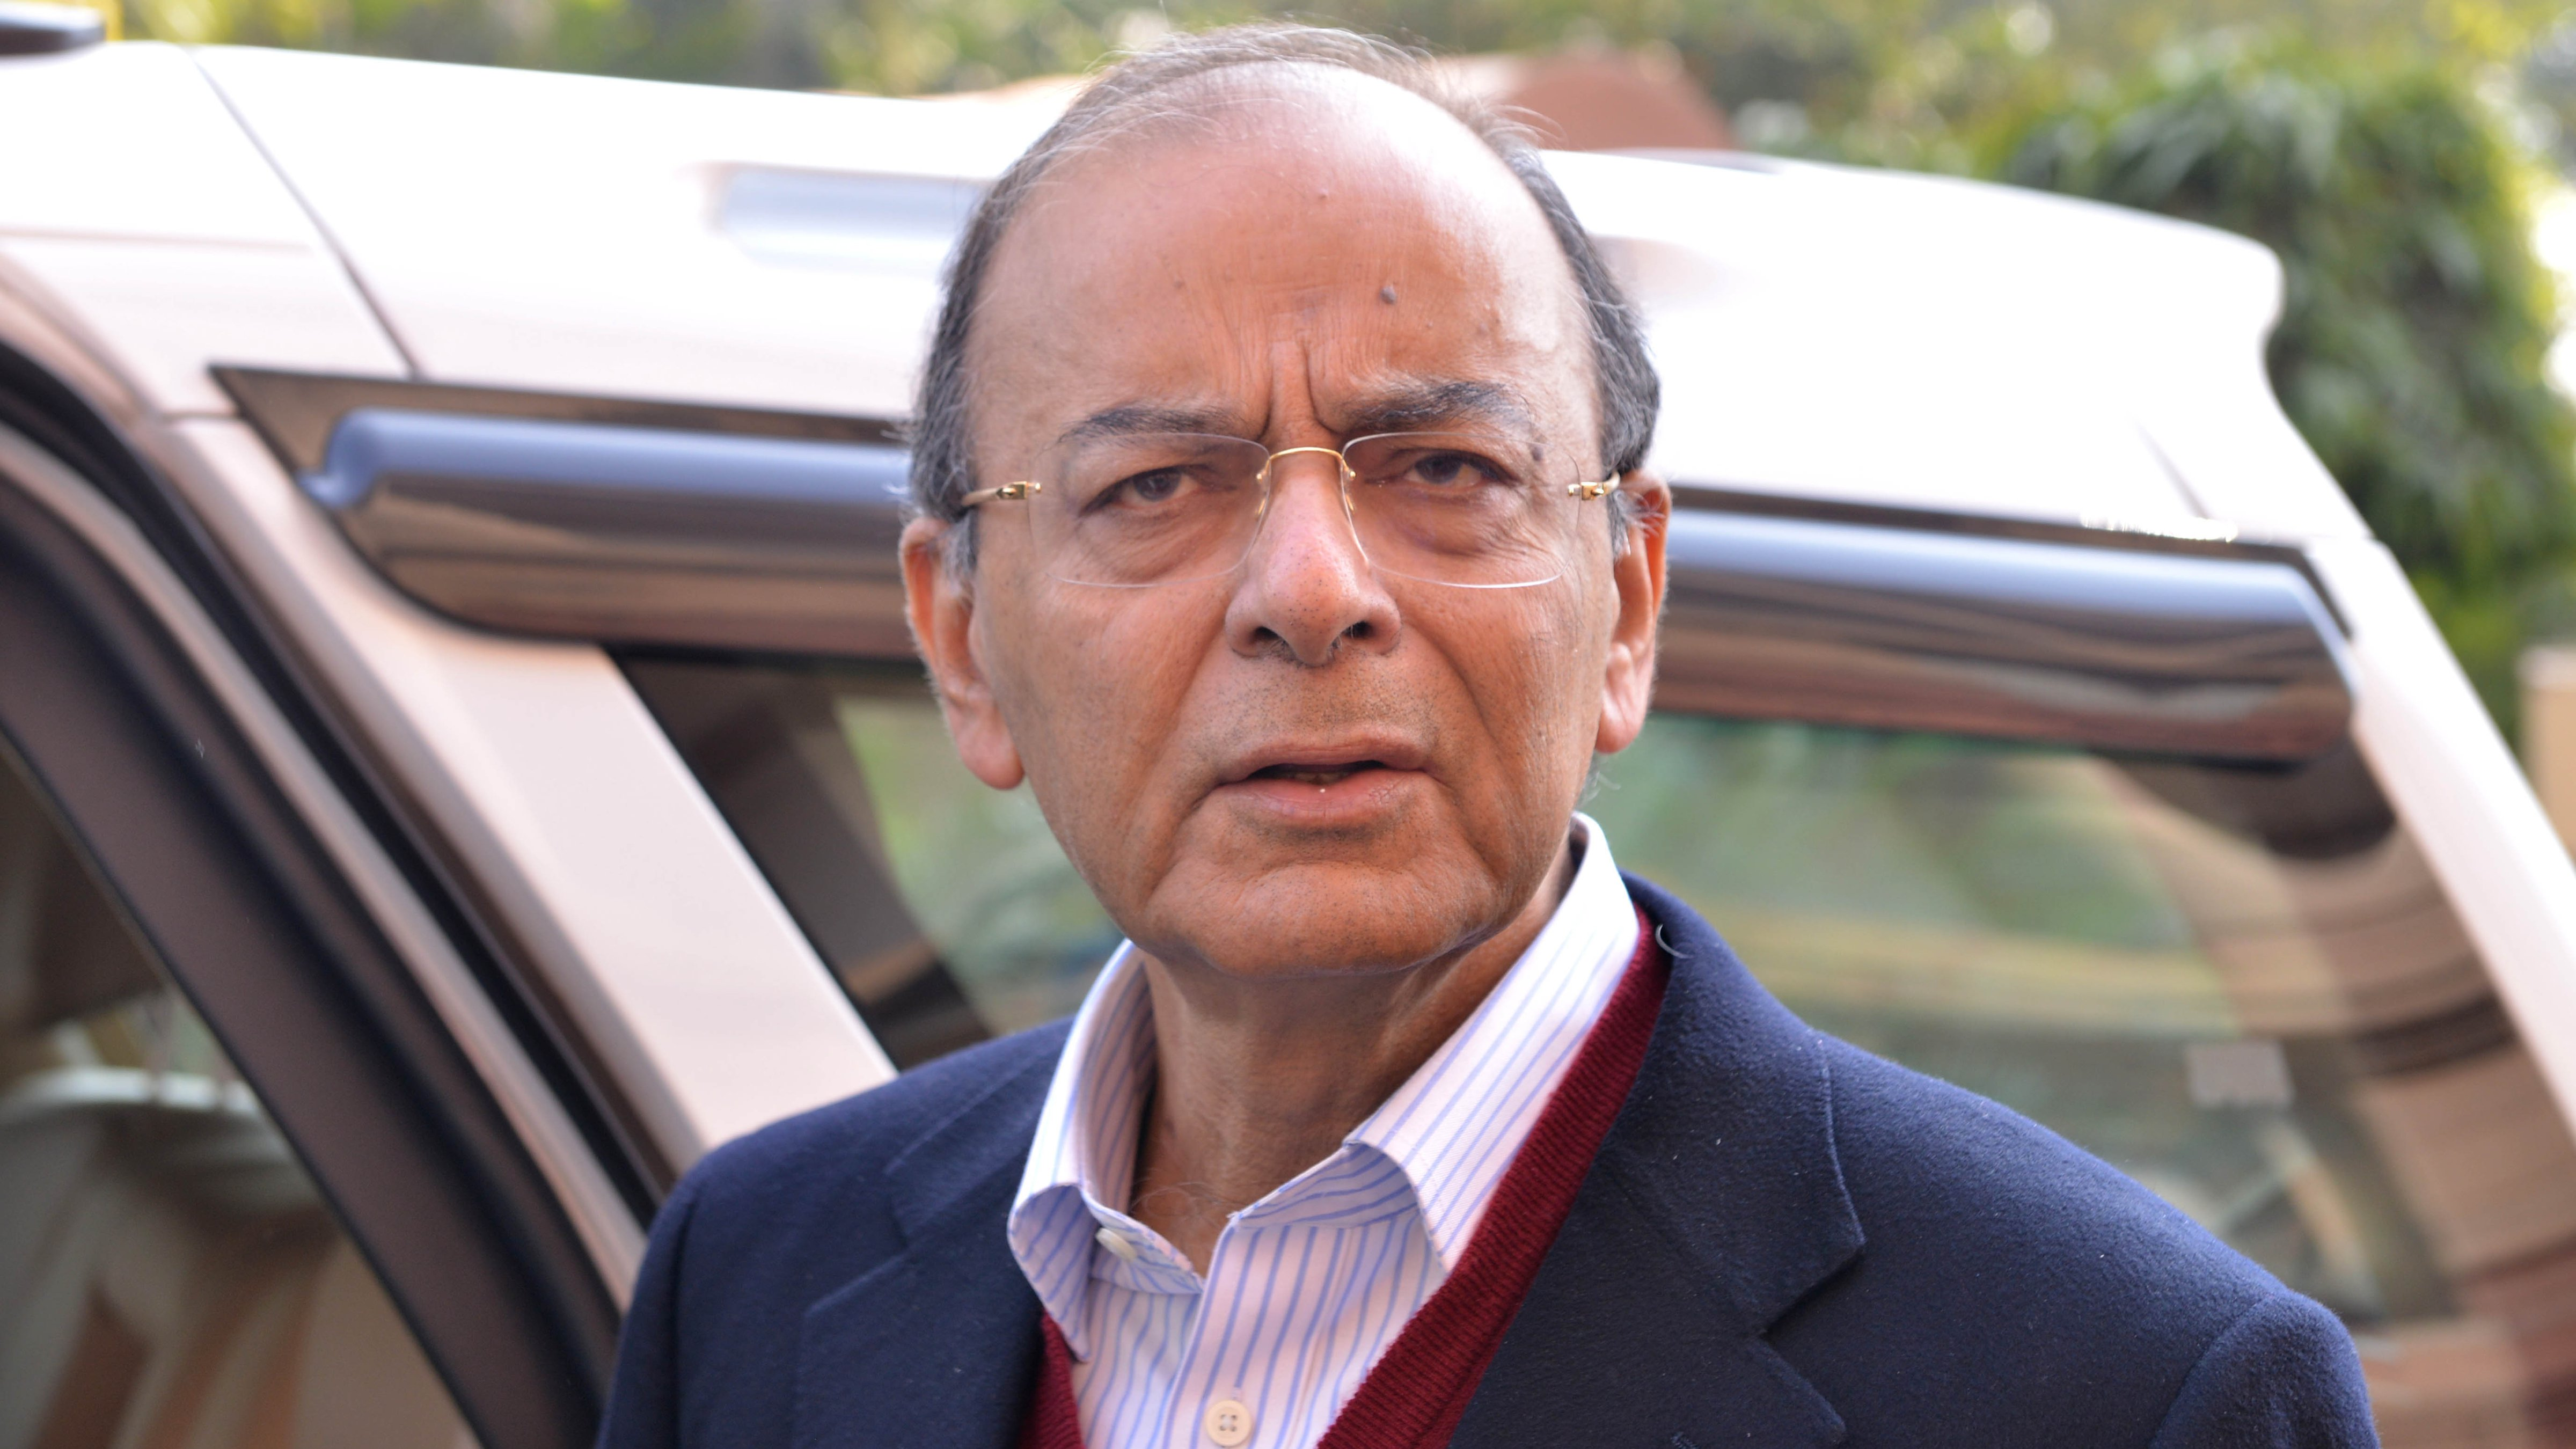 Arun Jaitley criticised Rahul Gandhi by saying that he must